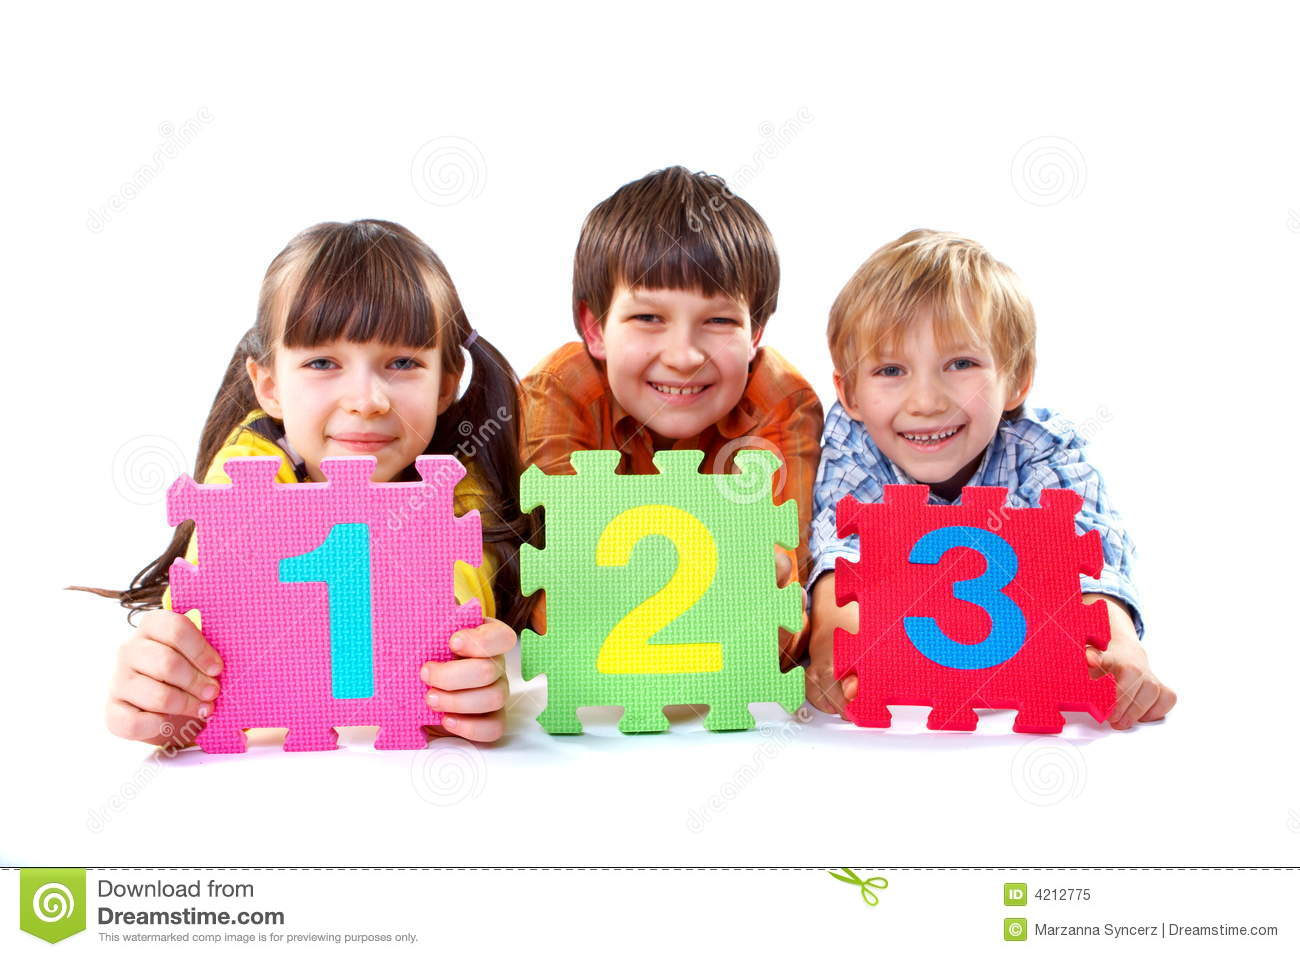 Http Www Dreamstime Com Royalty Free Stock Photo Kids Numbers Image4212775